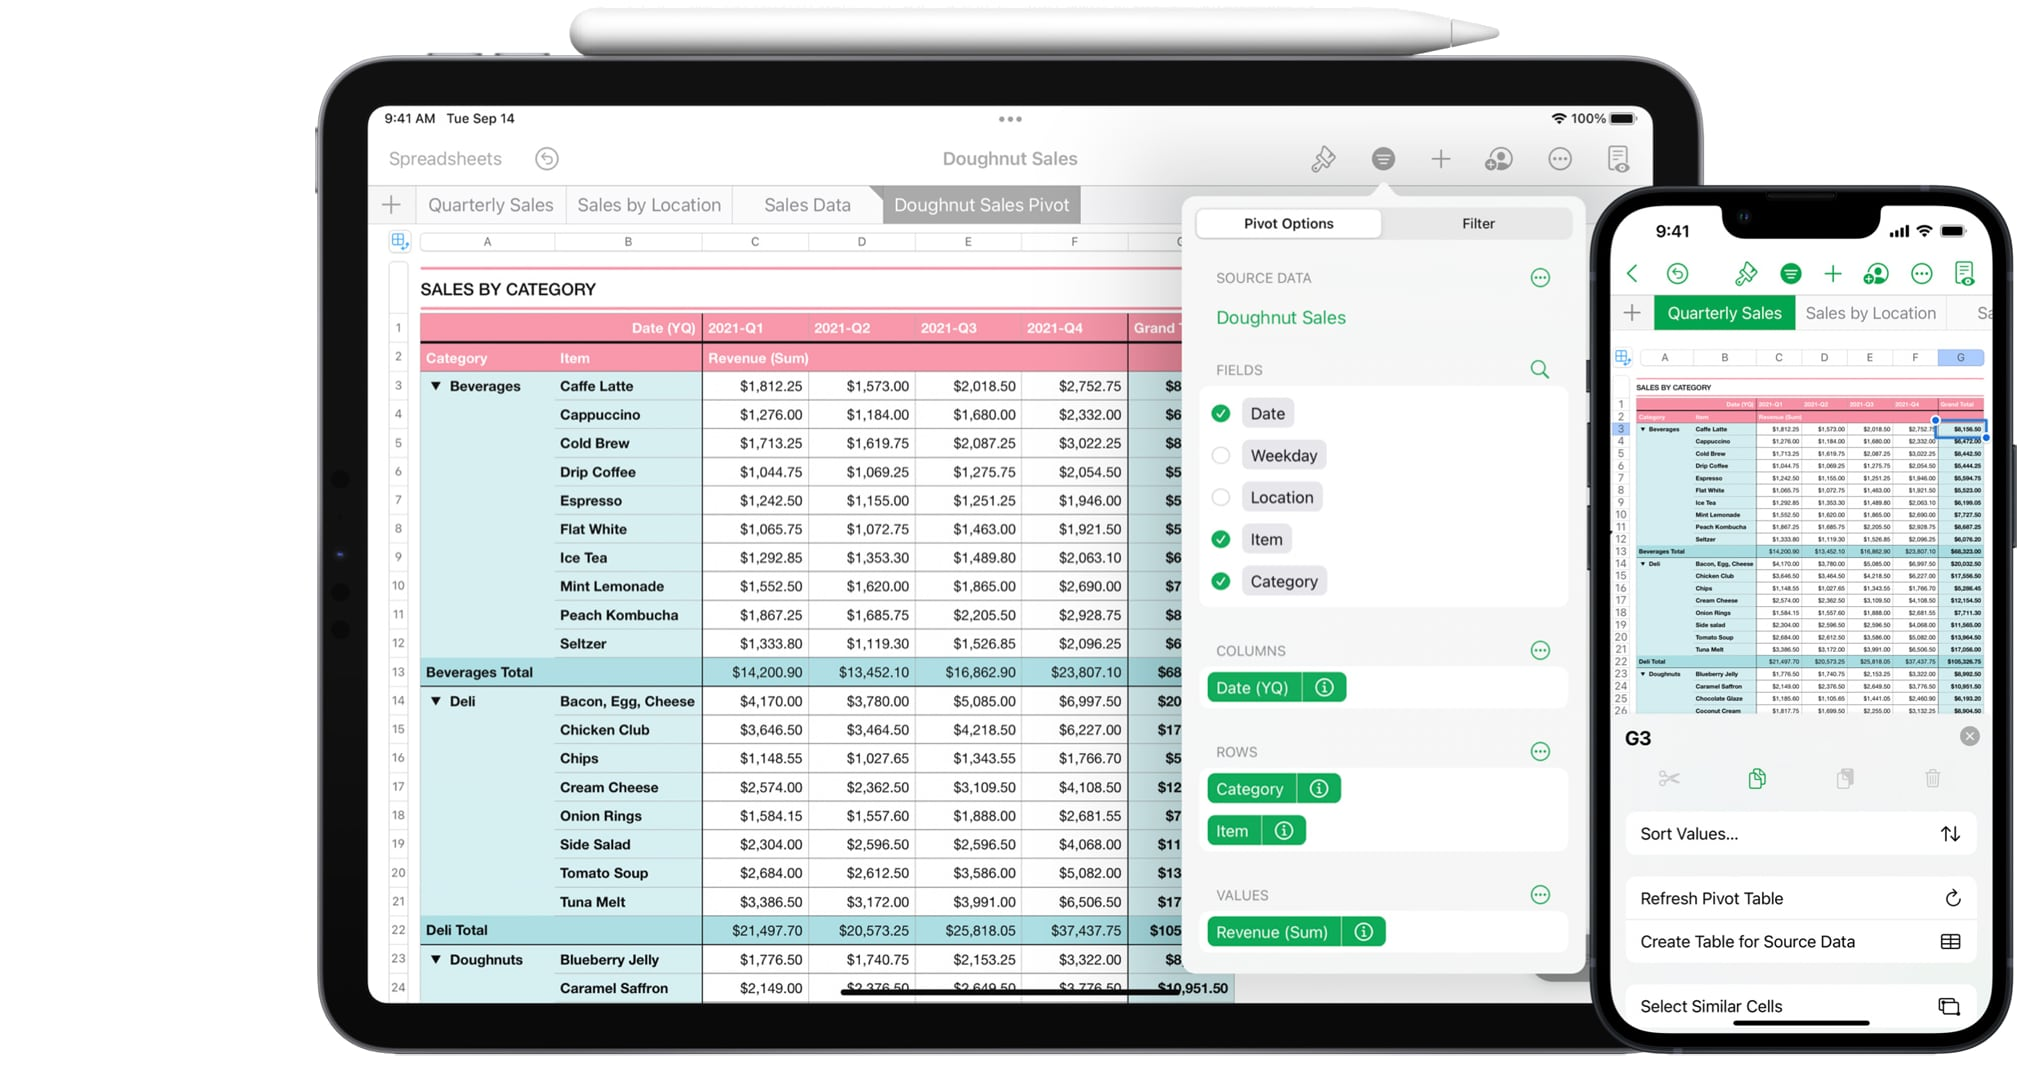 Apple's marketing image showing Numbers version 11.2 with pivot tables on iPhone and iPad